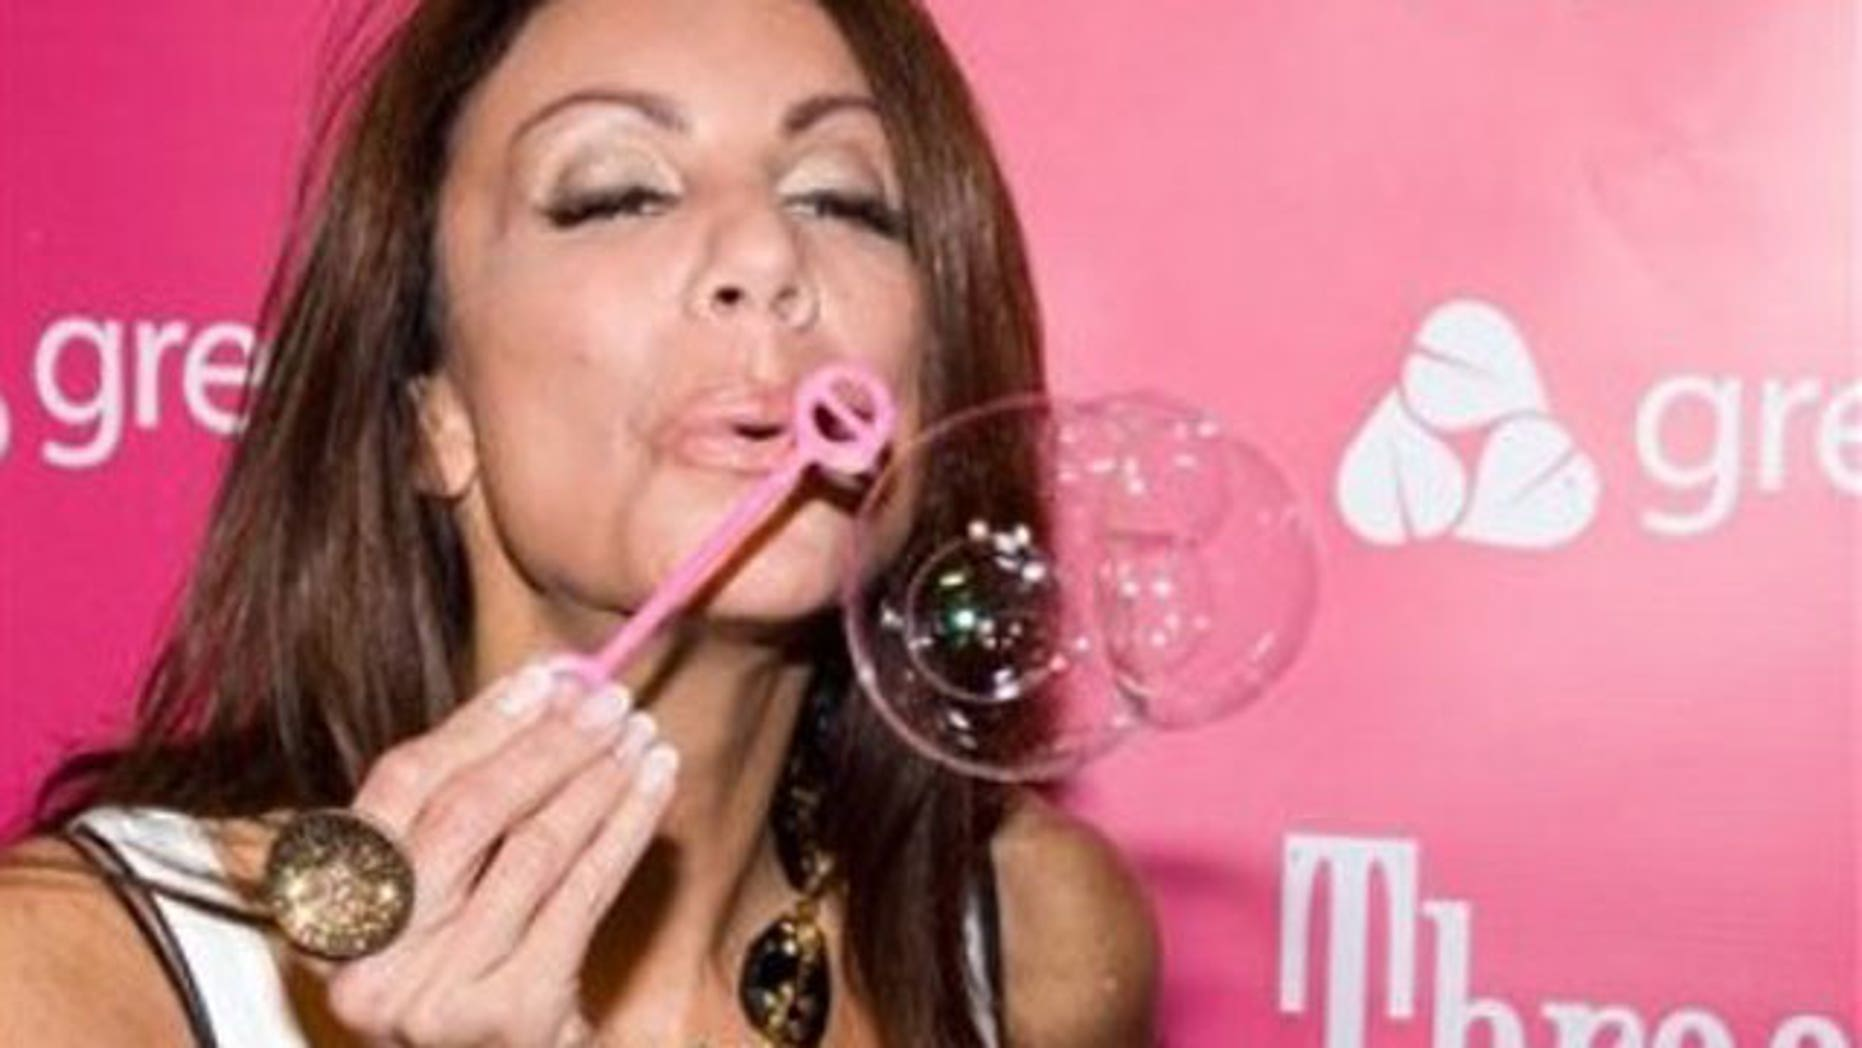 Danielle Staub blows bubbles at Three-O Bubble Vodka launch party at Greenhouse in New York, Thursday, July 9, 2009. (AP)